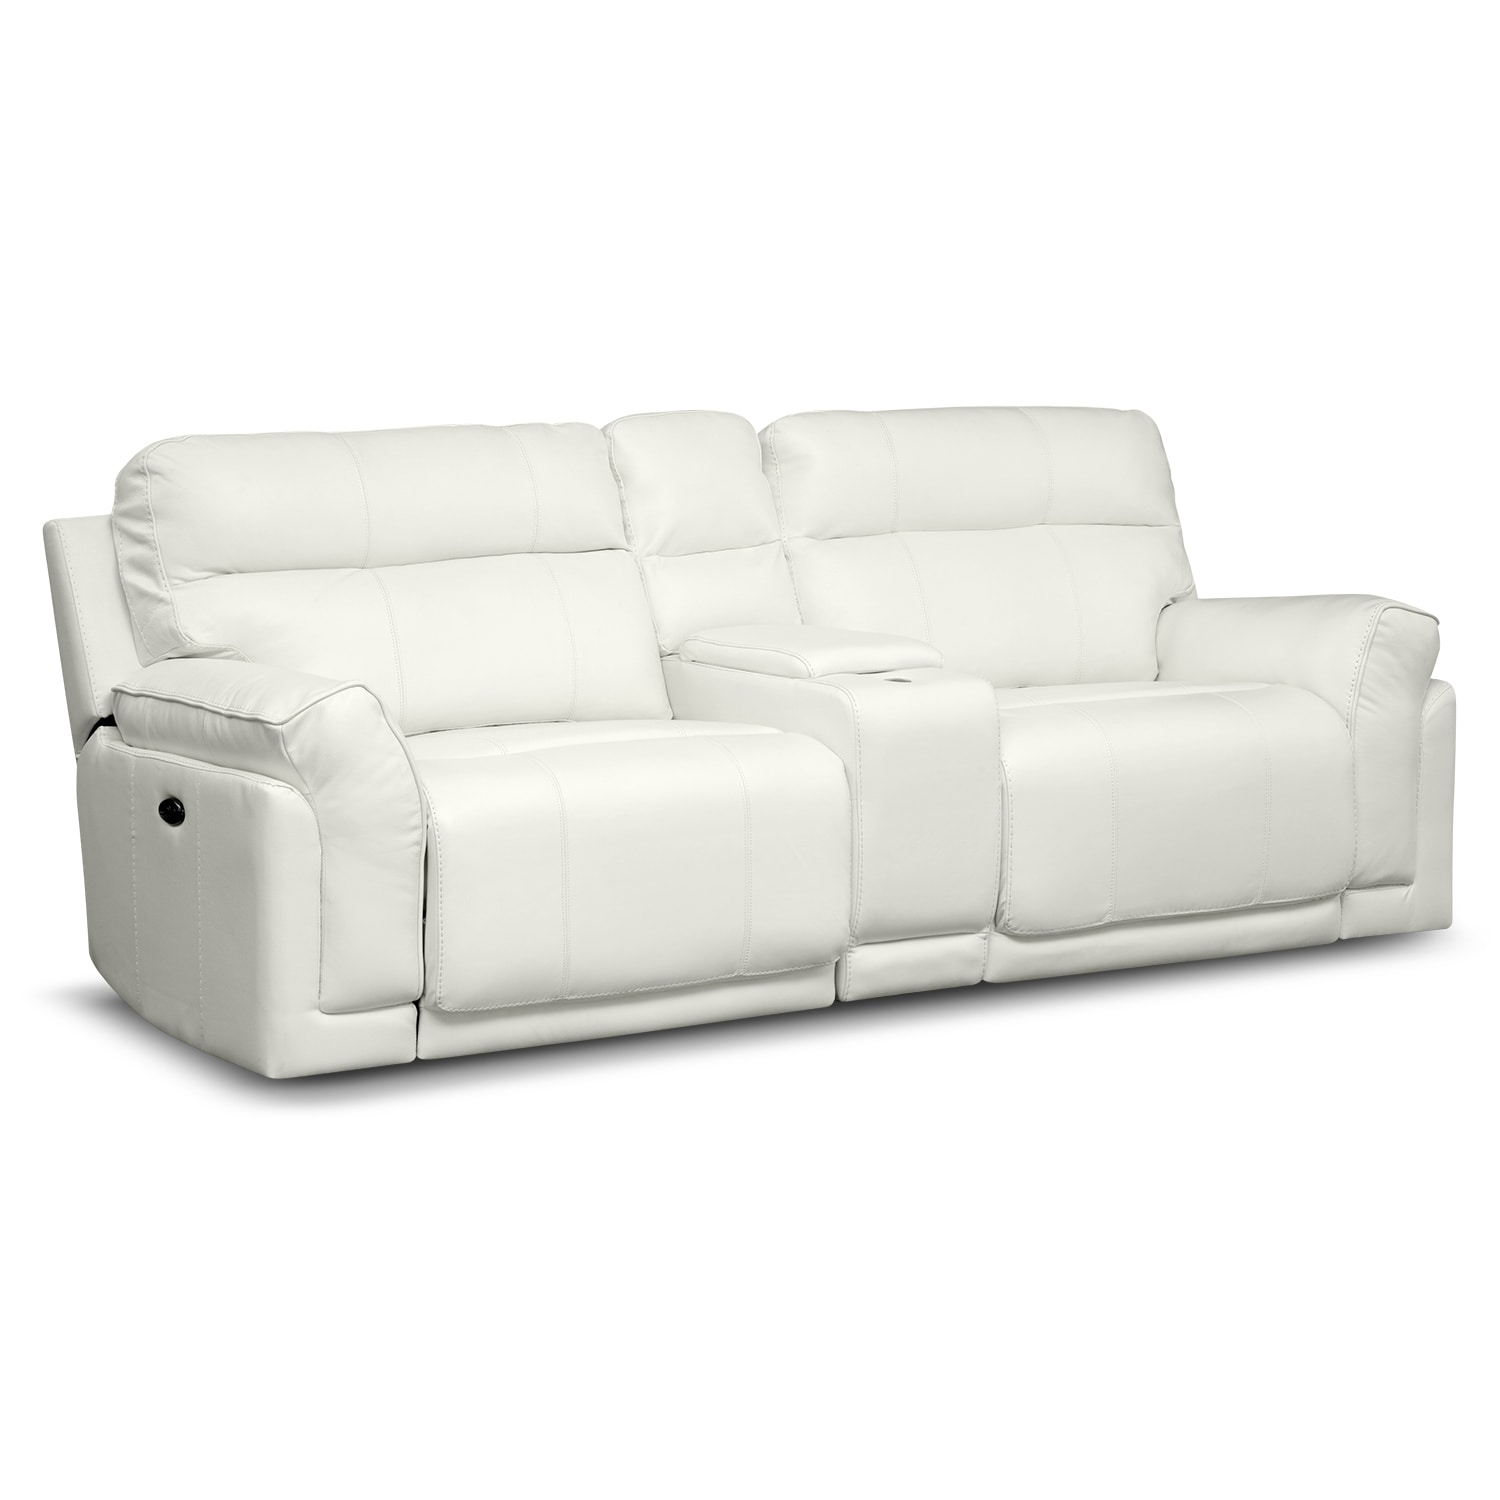 Antonio white leather power reclining sofa with console Leather reclining loveseat